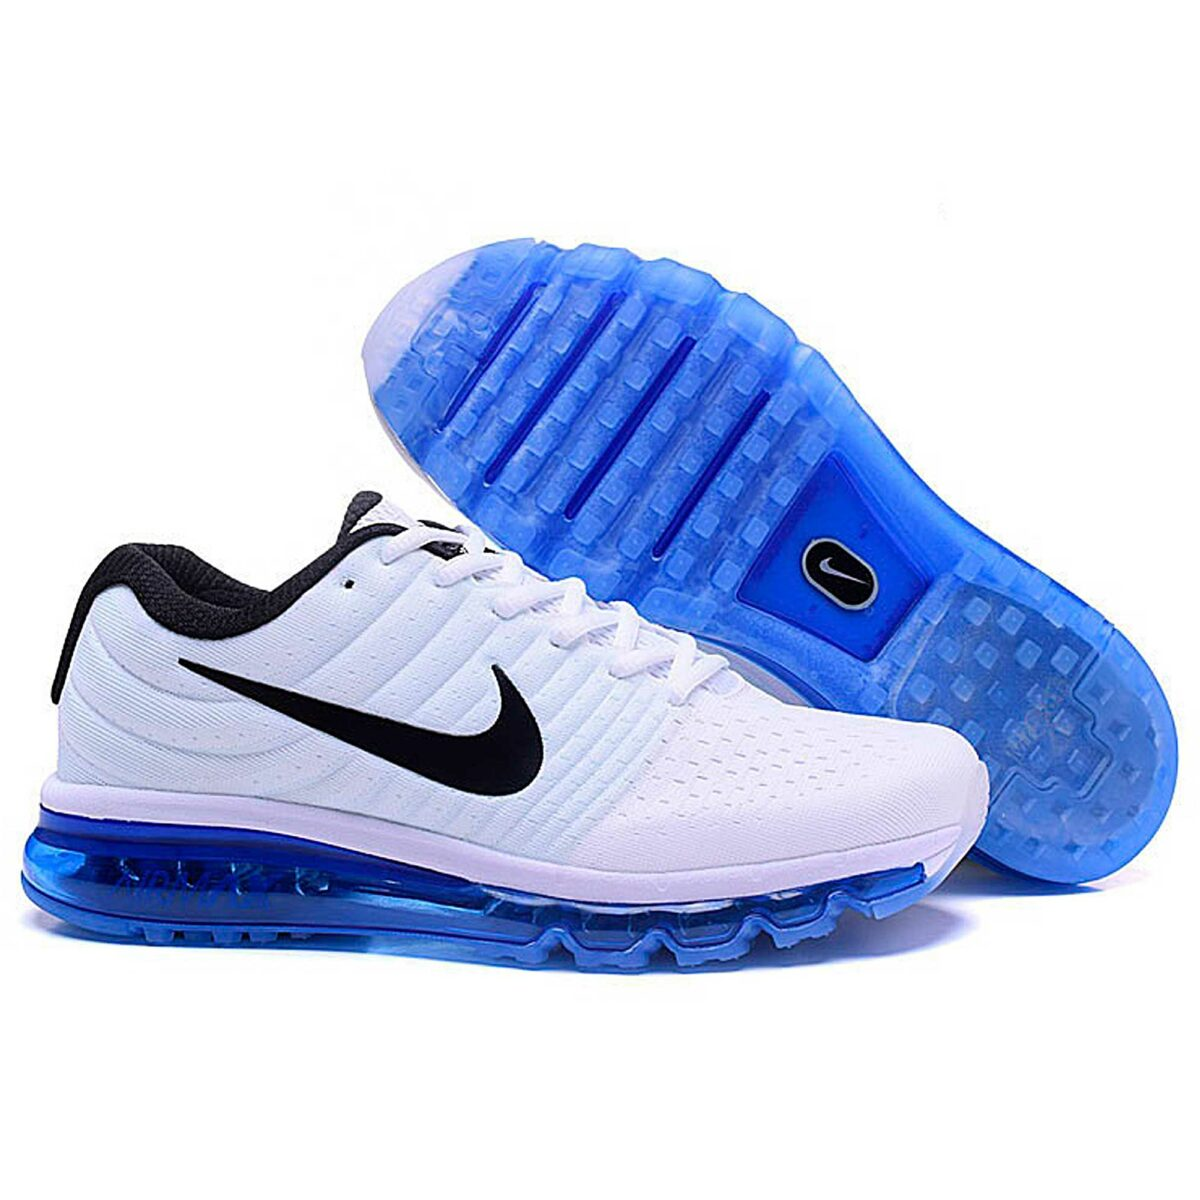 nike air max 2017 white blue 849560-107 купить